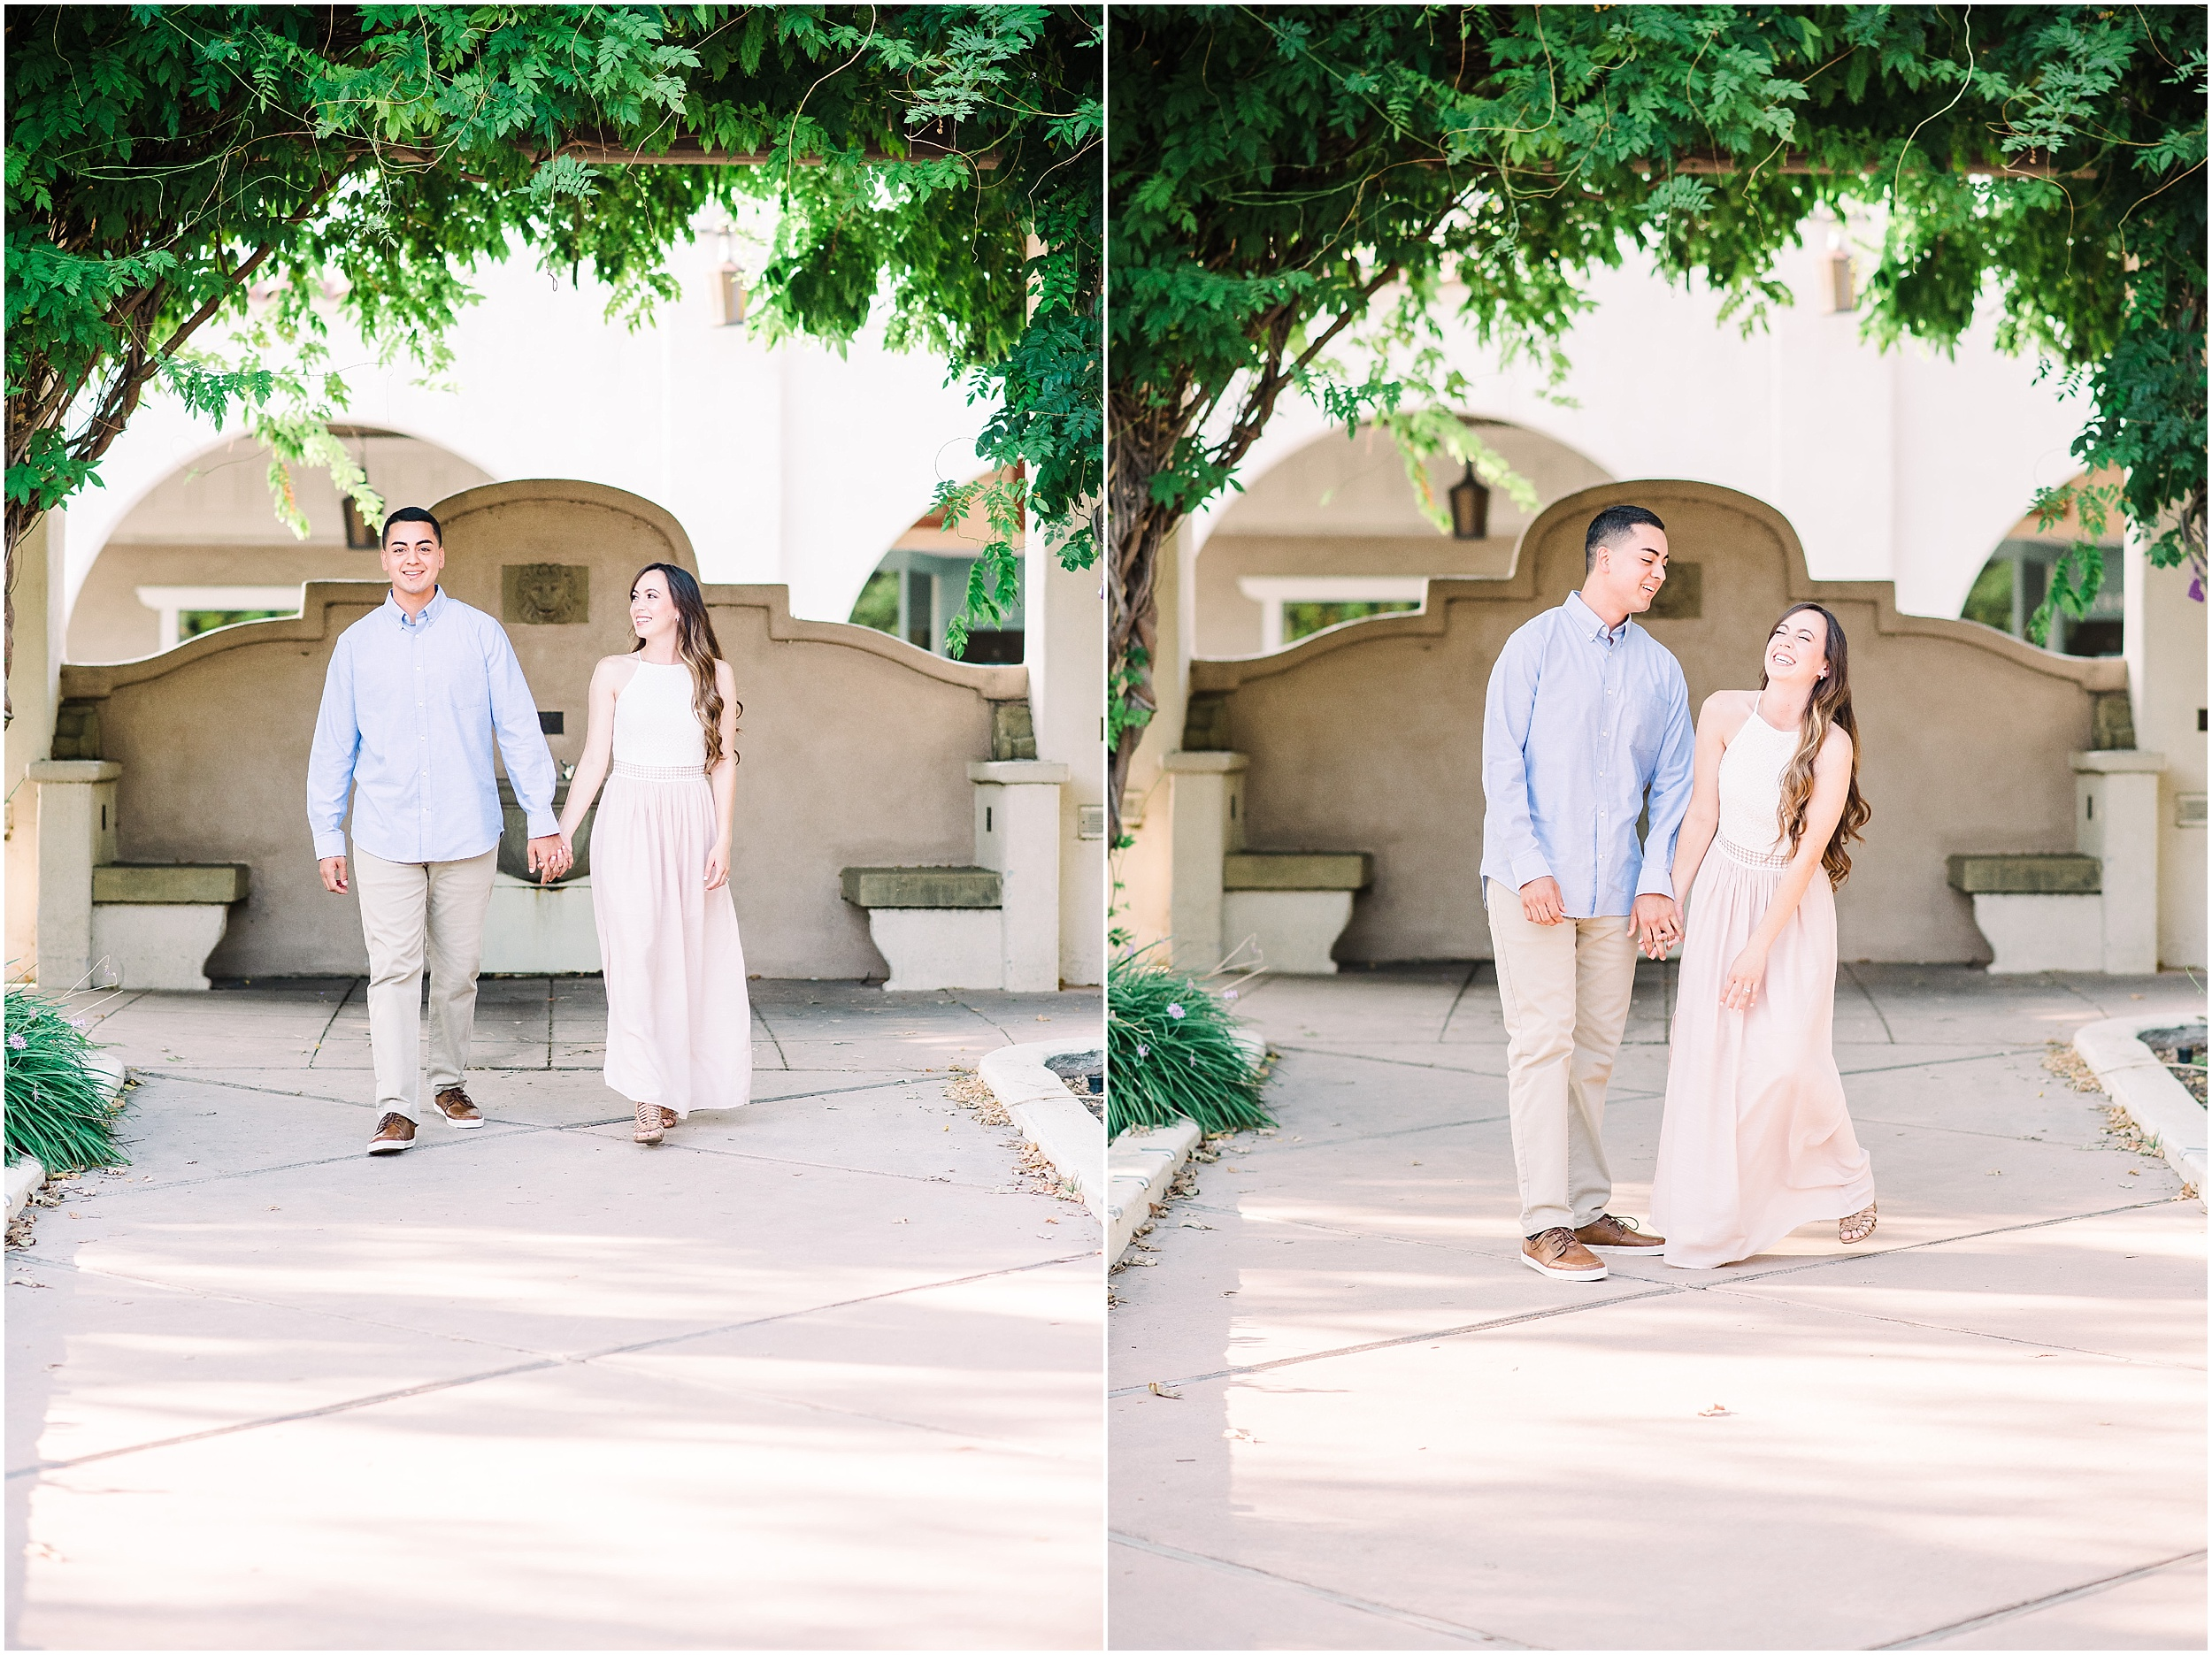 Valeria-Gonzalez-Photography-Wedding-and-Portrait-Photographer-Richmond-Virginia-Engagement-Session-in-Ojai-California_0001.jpg